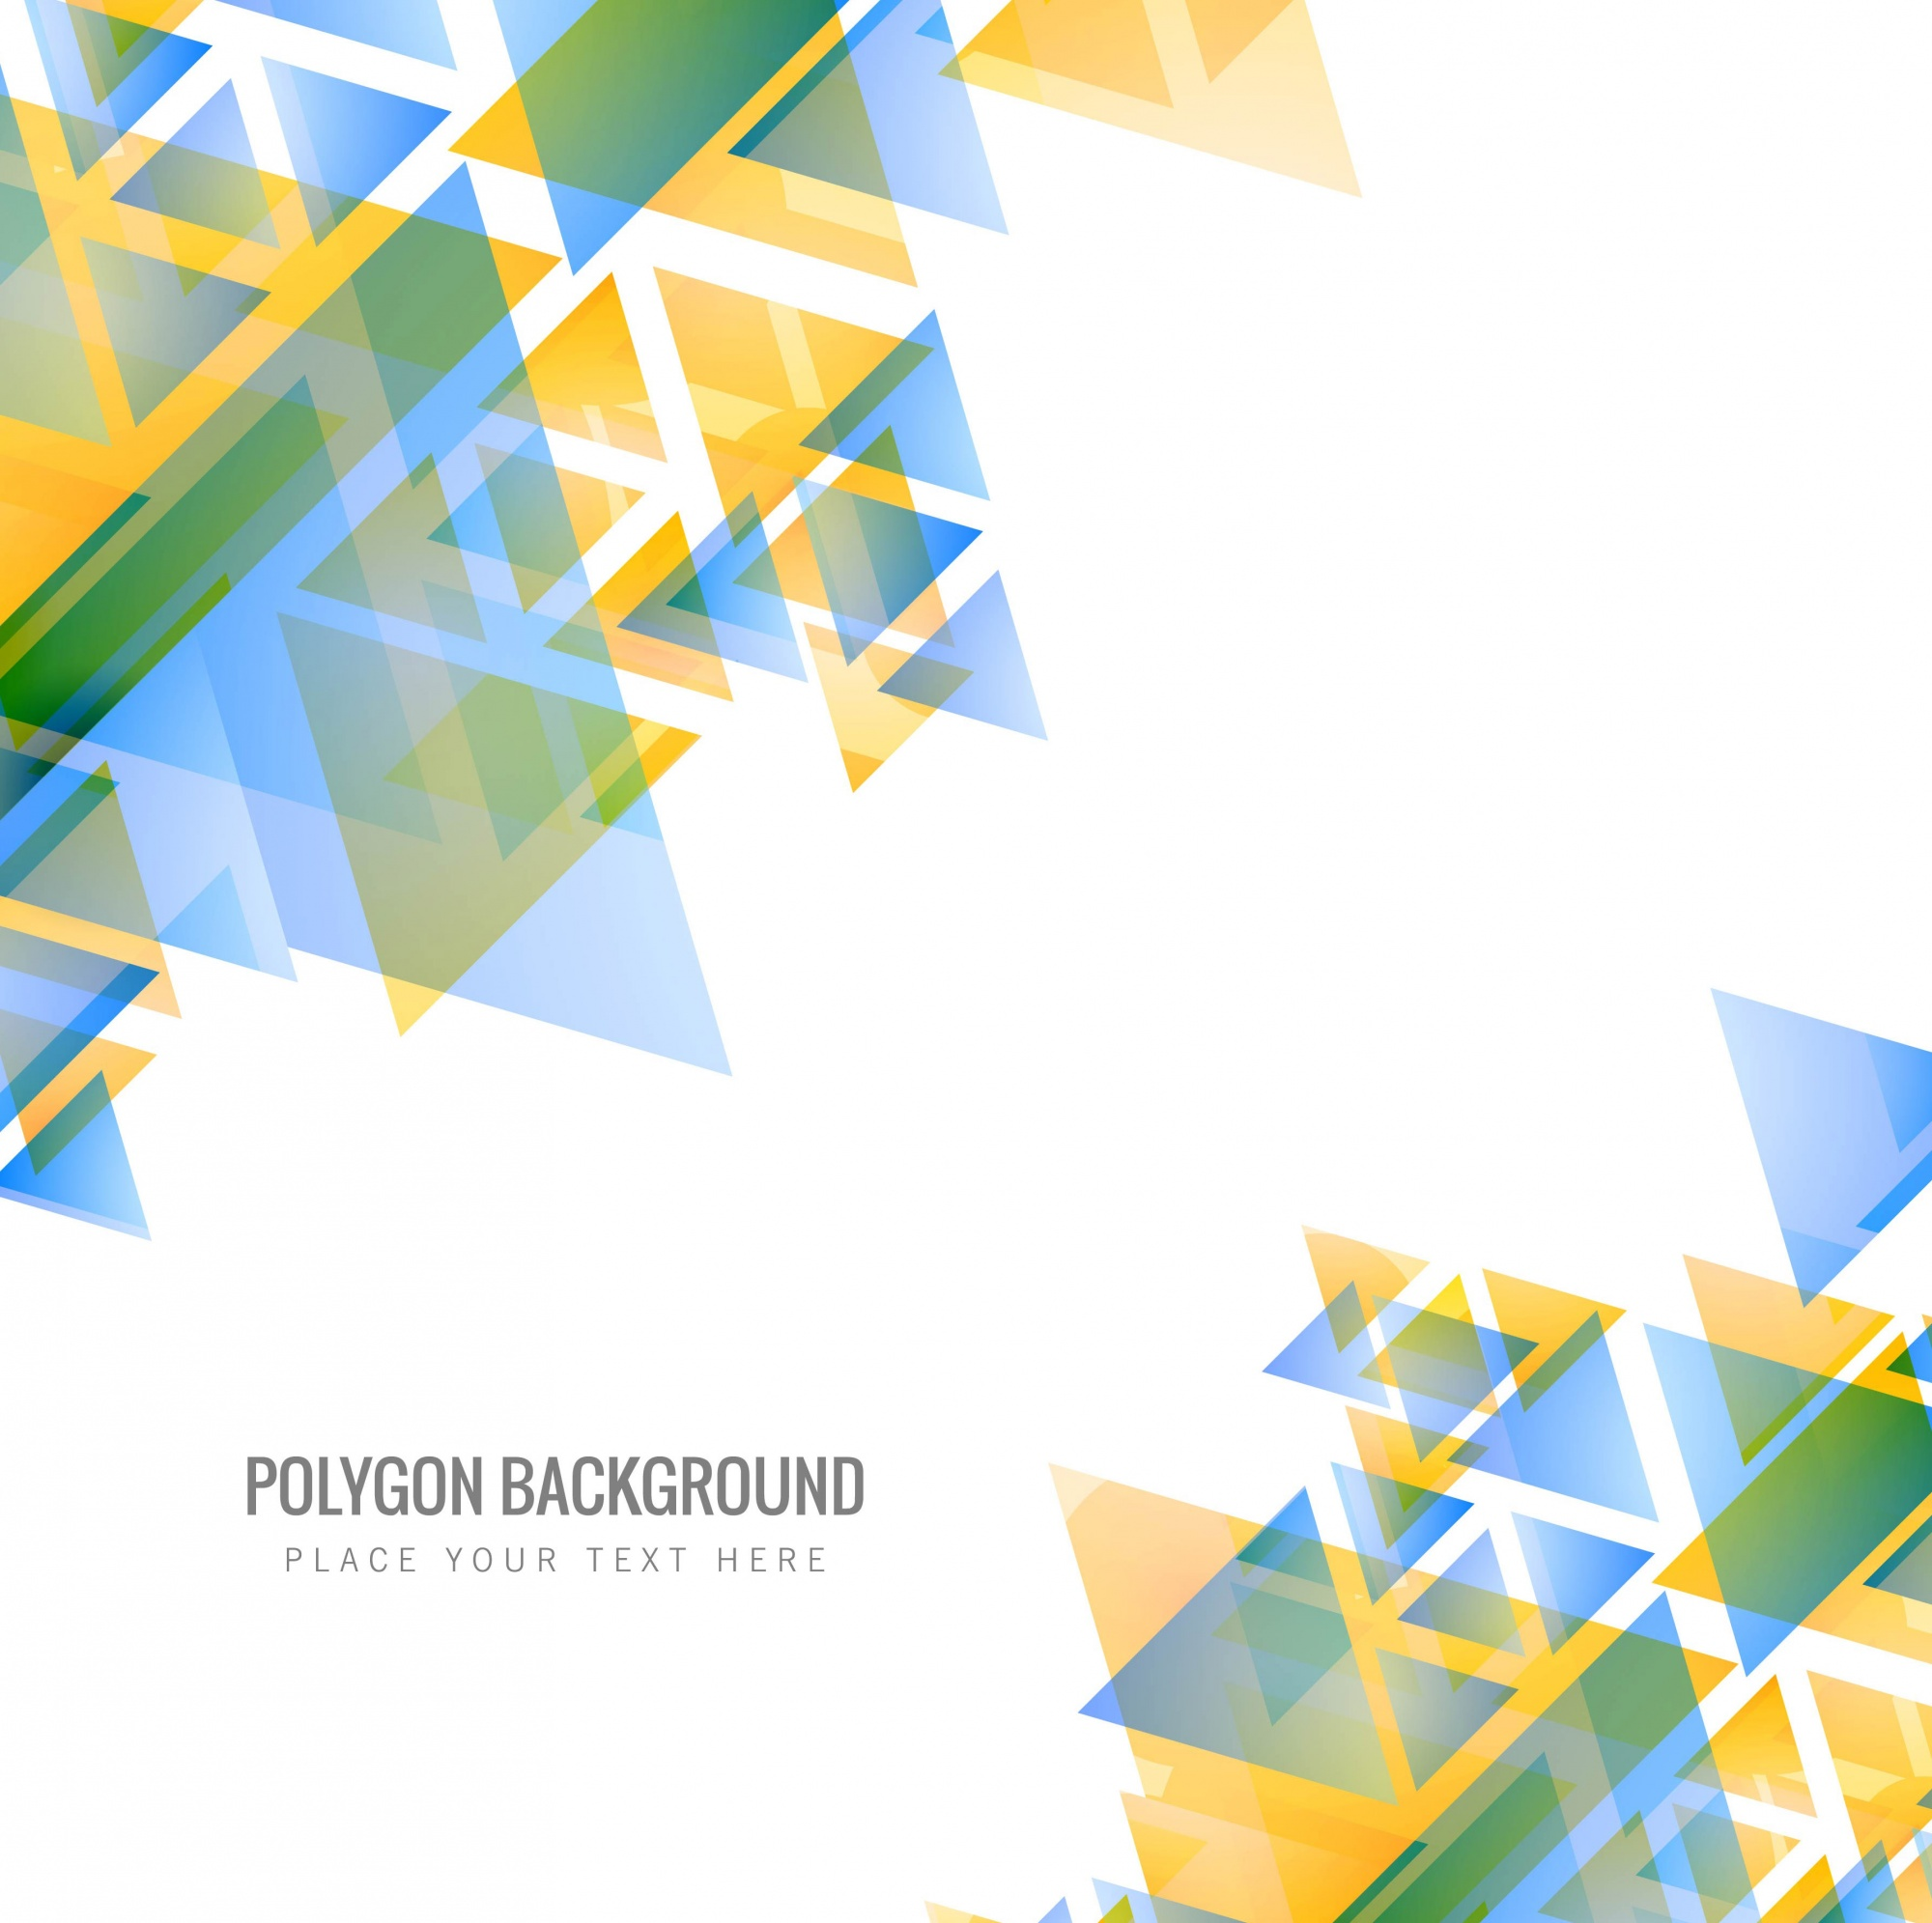 Abstract colorful polygon background illustration